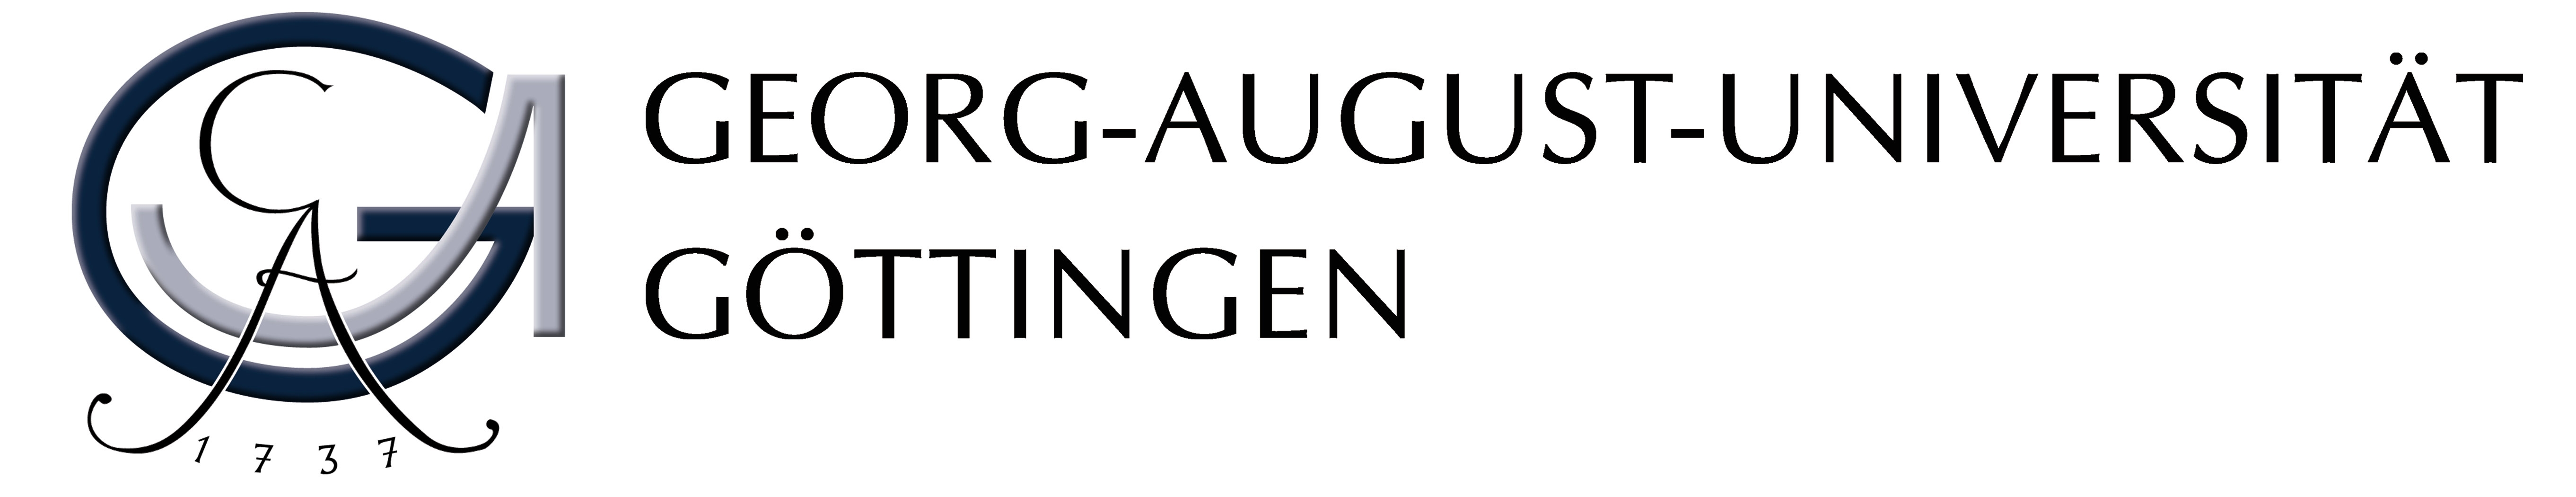 Logo der Universitaet, farbig, links